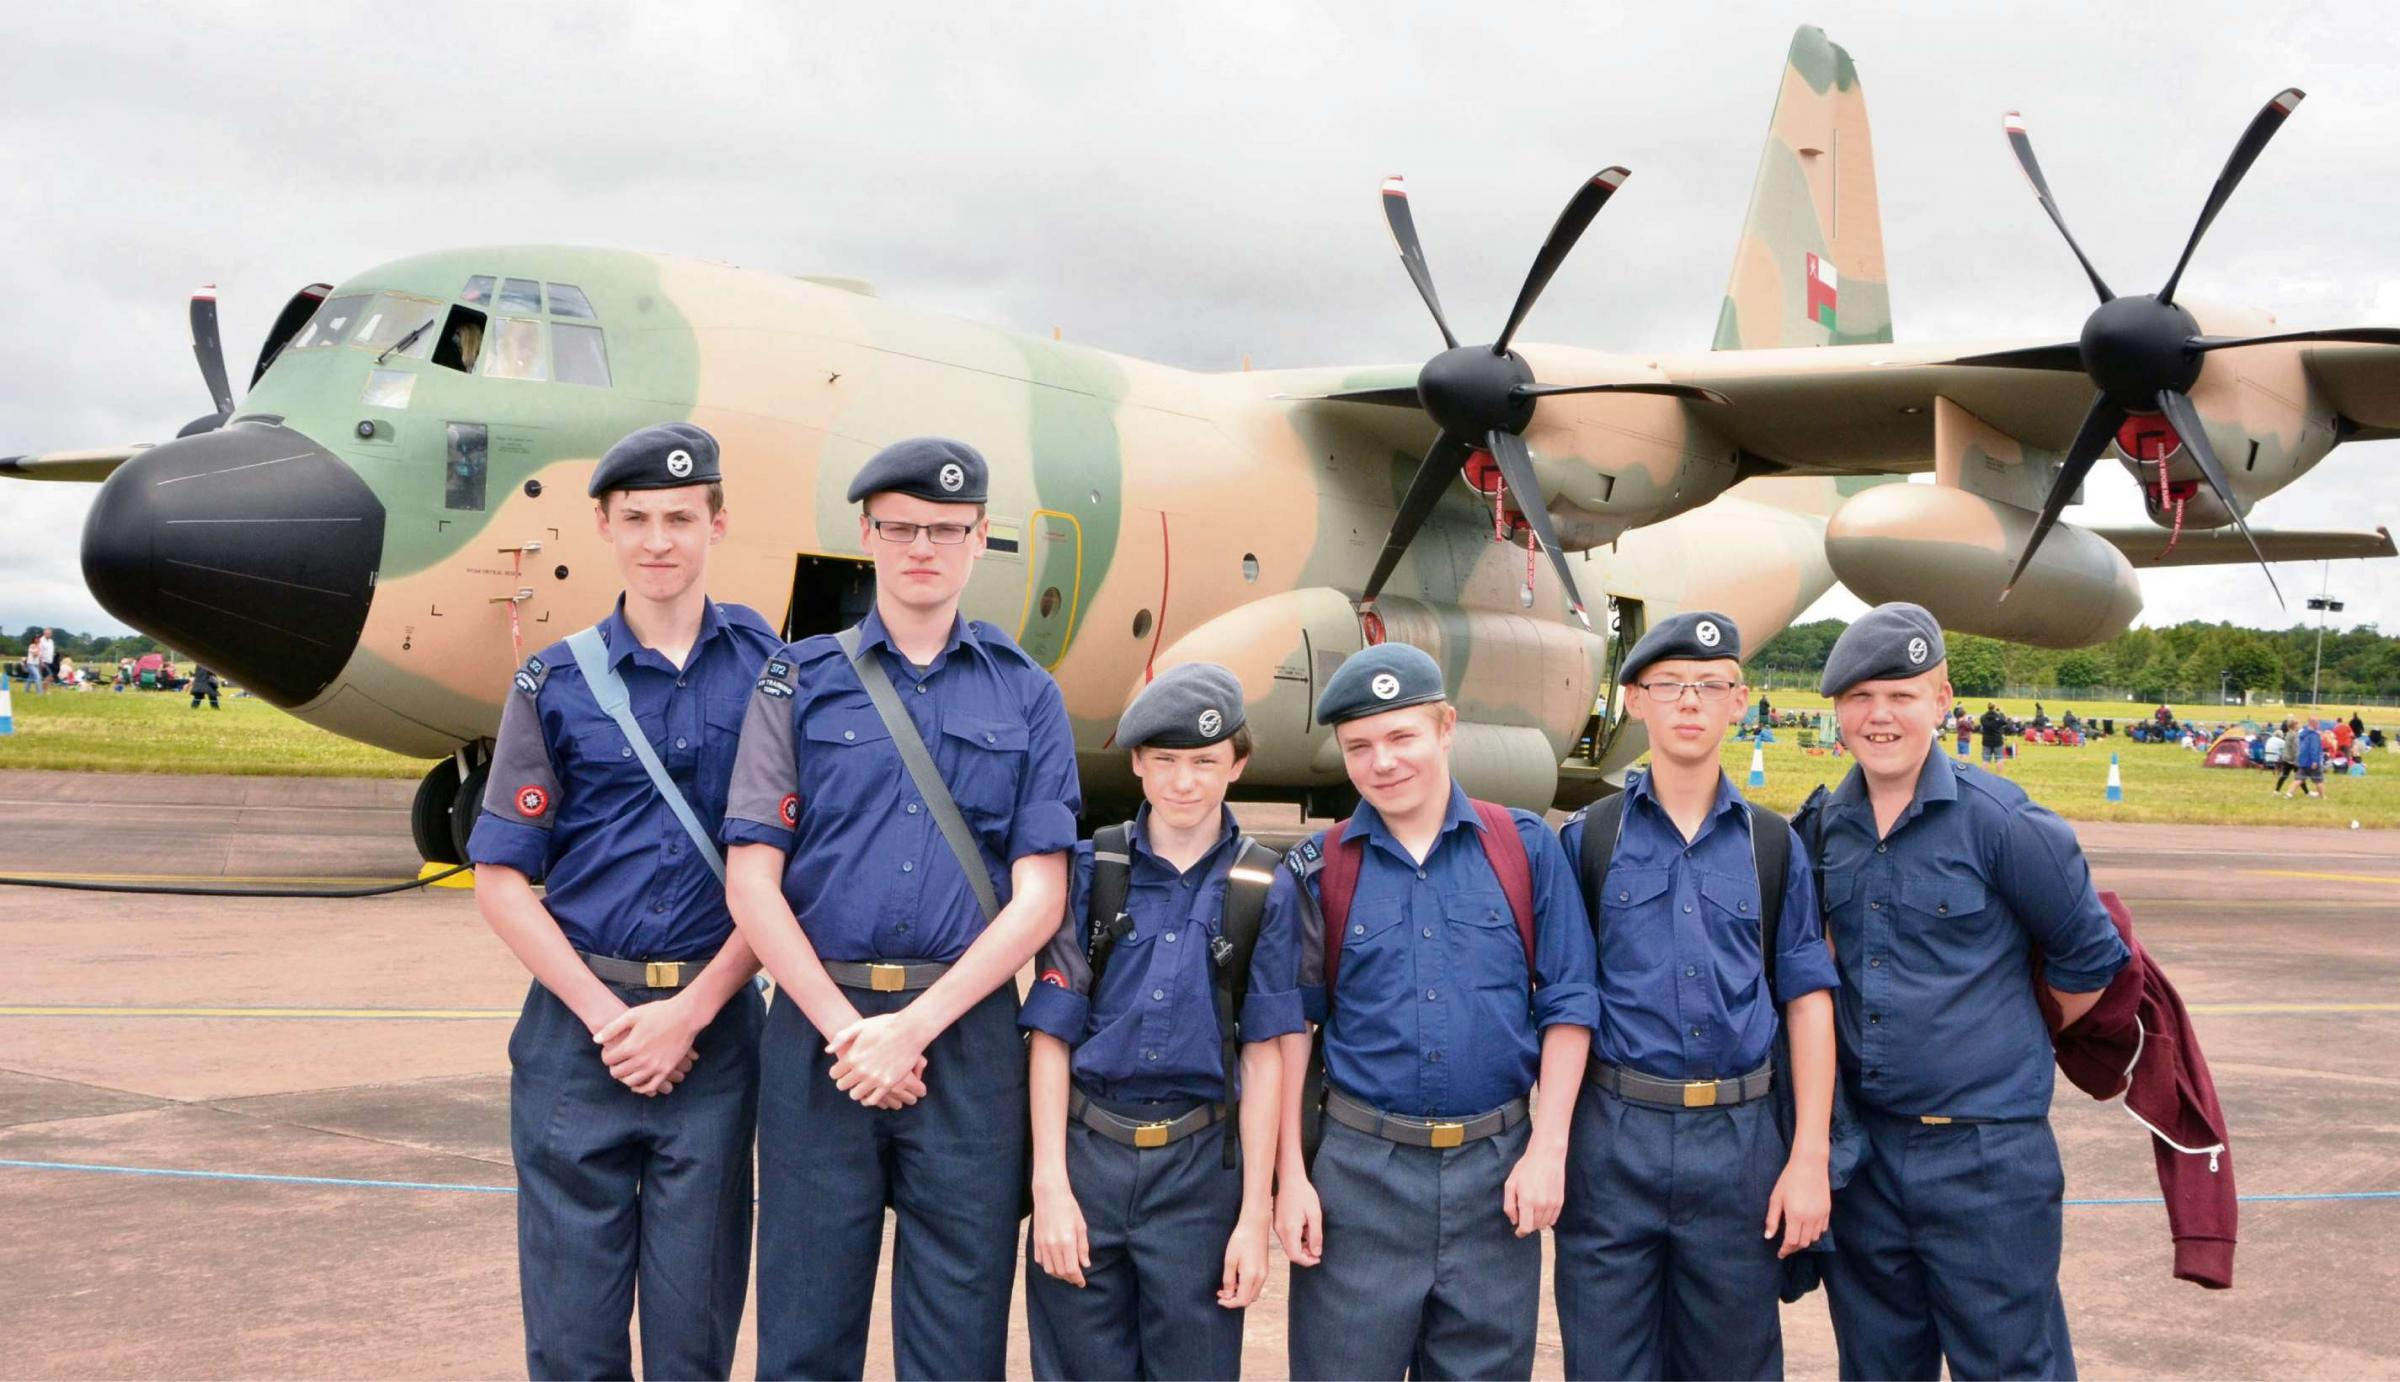 AIR TATTOO: Kieren Bushell, Dominic Bushell, Rhys Lewis, Jacob Petre, Nathan Thompson and Alex Cheeseley in front of Hercules transport aircraft